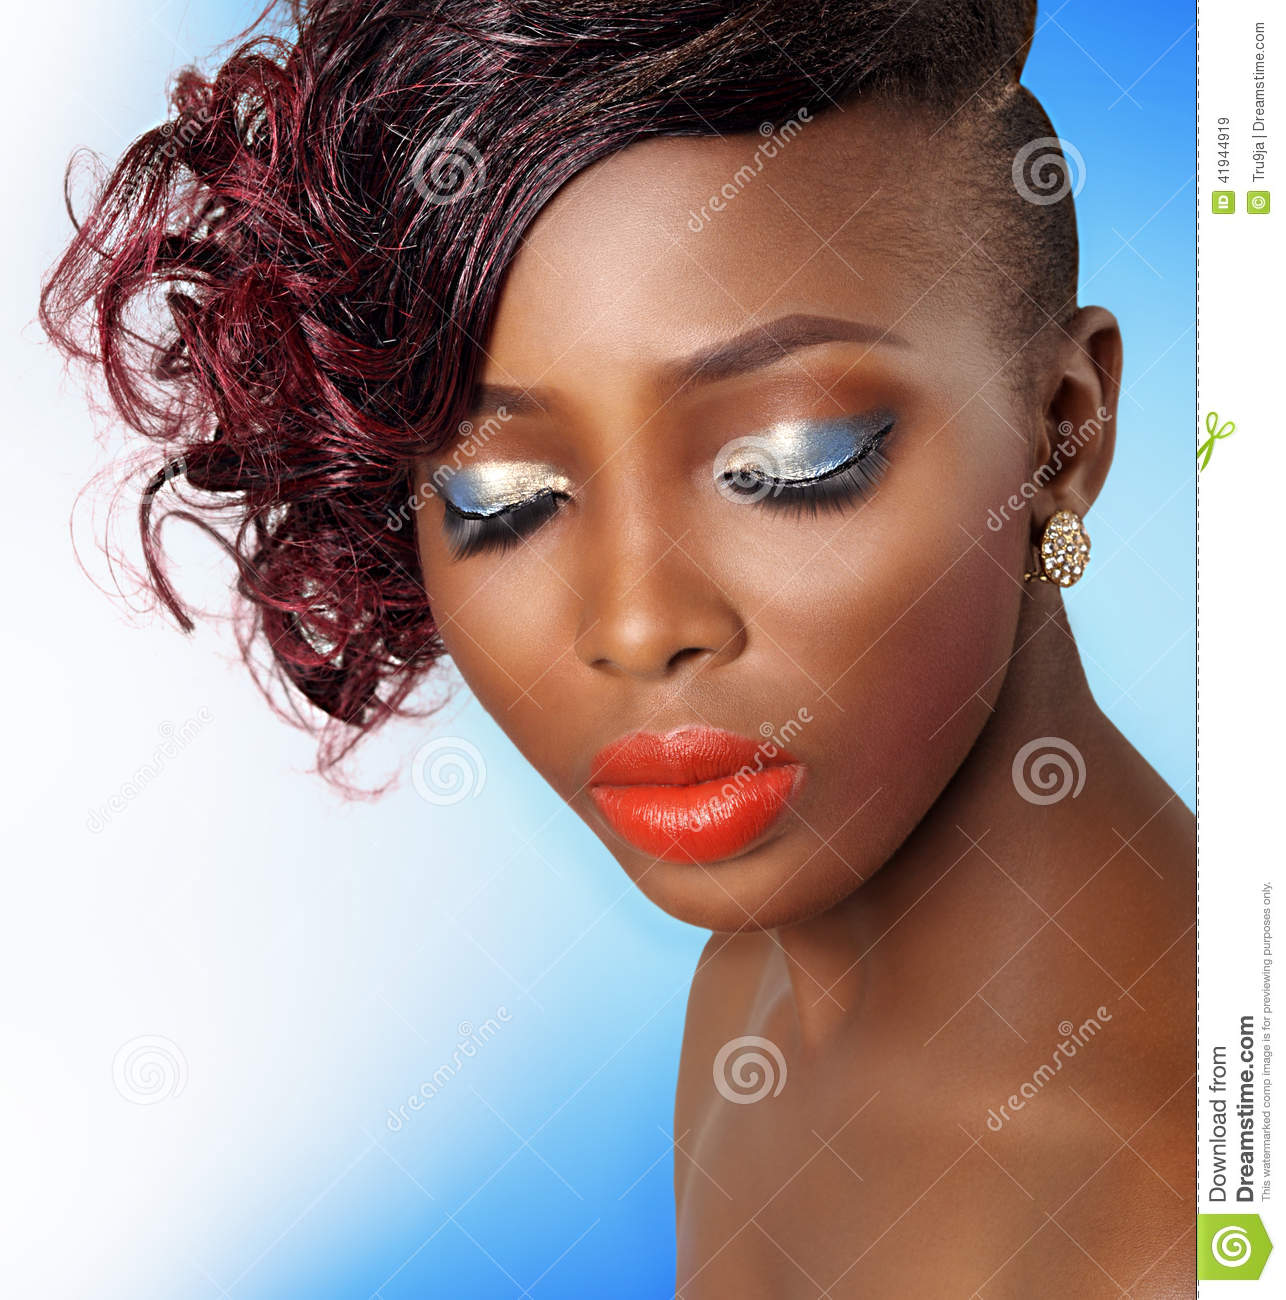 African Beauty: African American Beauty Woman Stock Photo